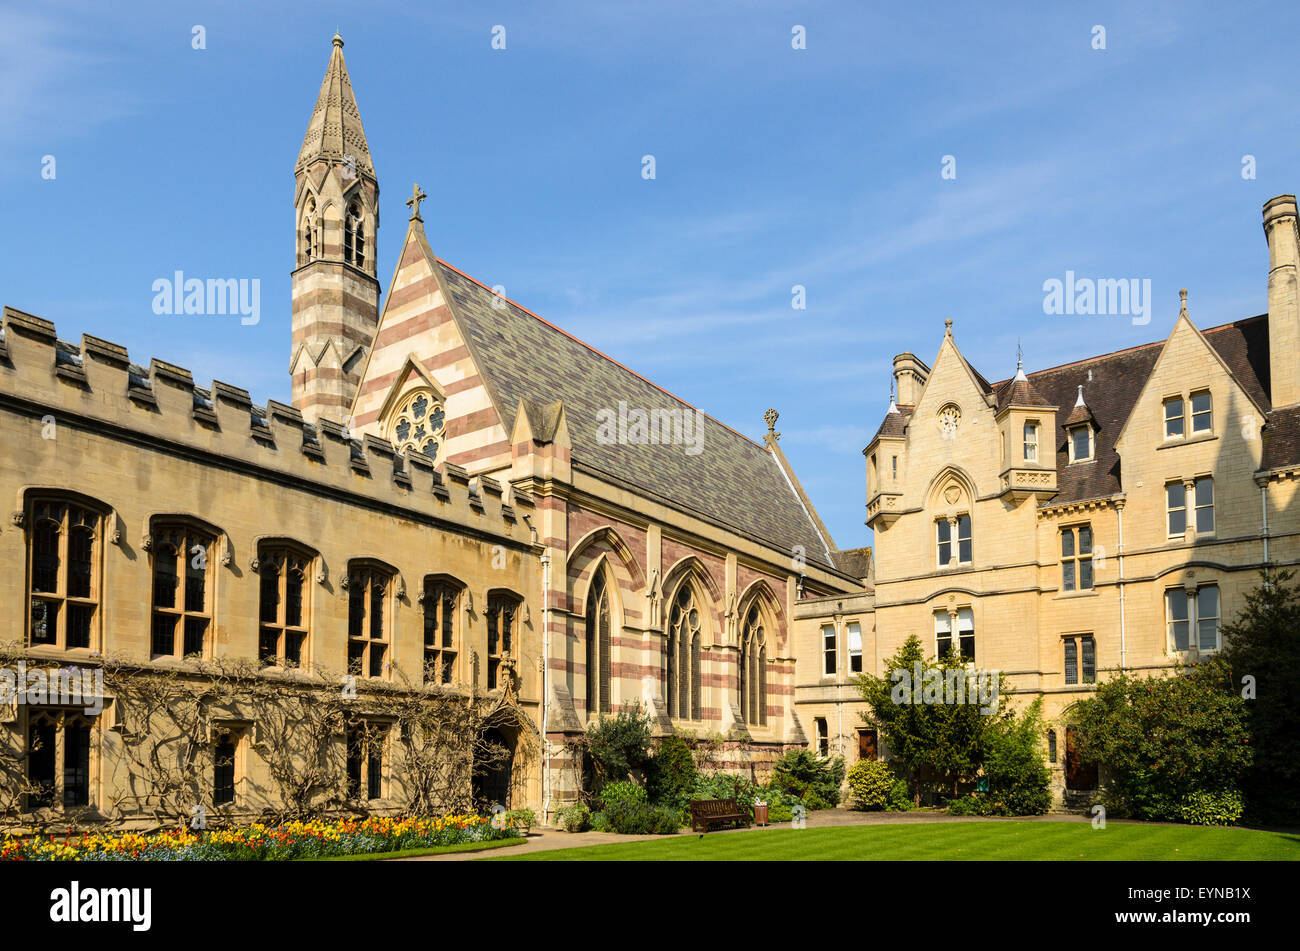 Balliol College, University of Oxford, Oxford, England, UK. - Stock Image